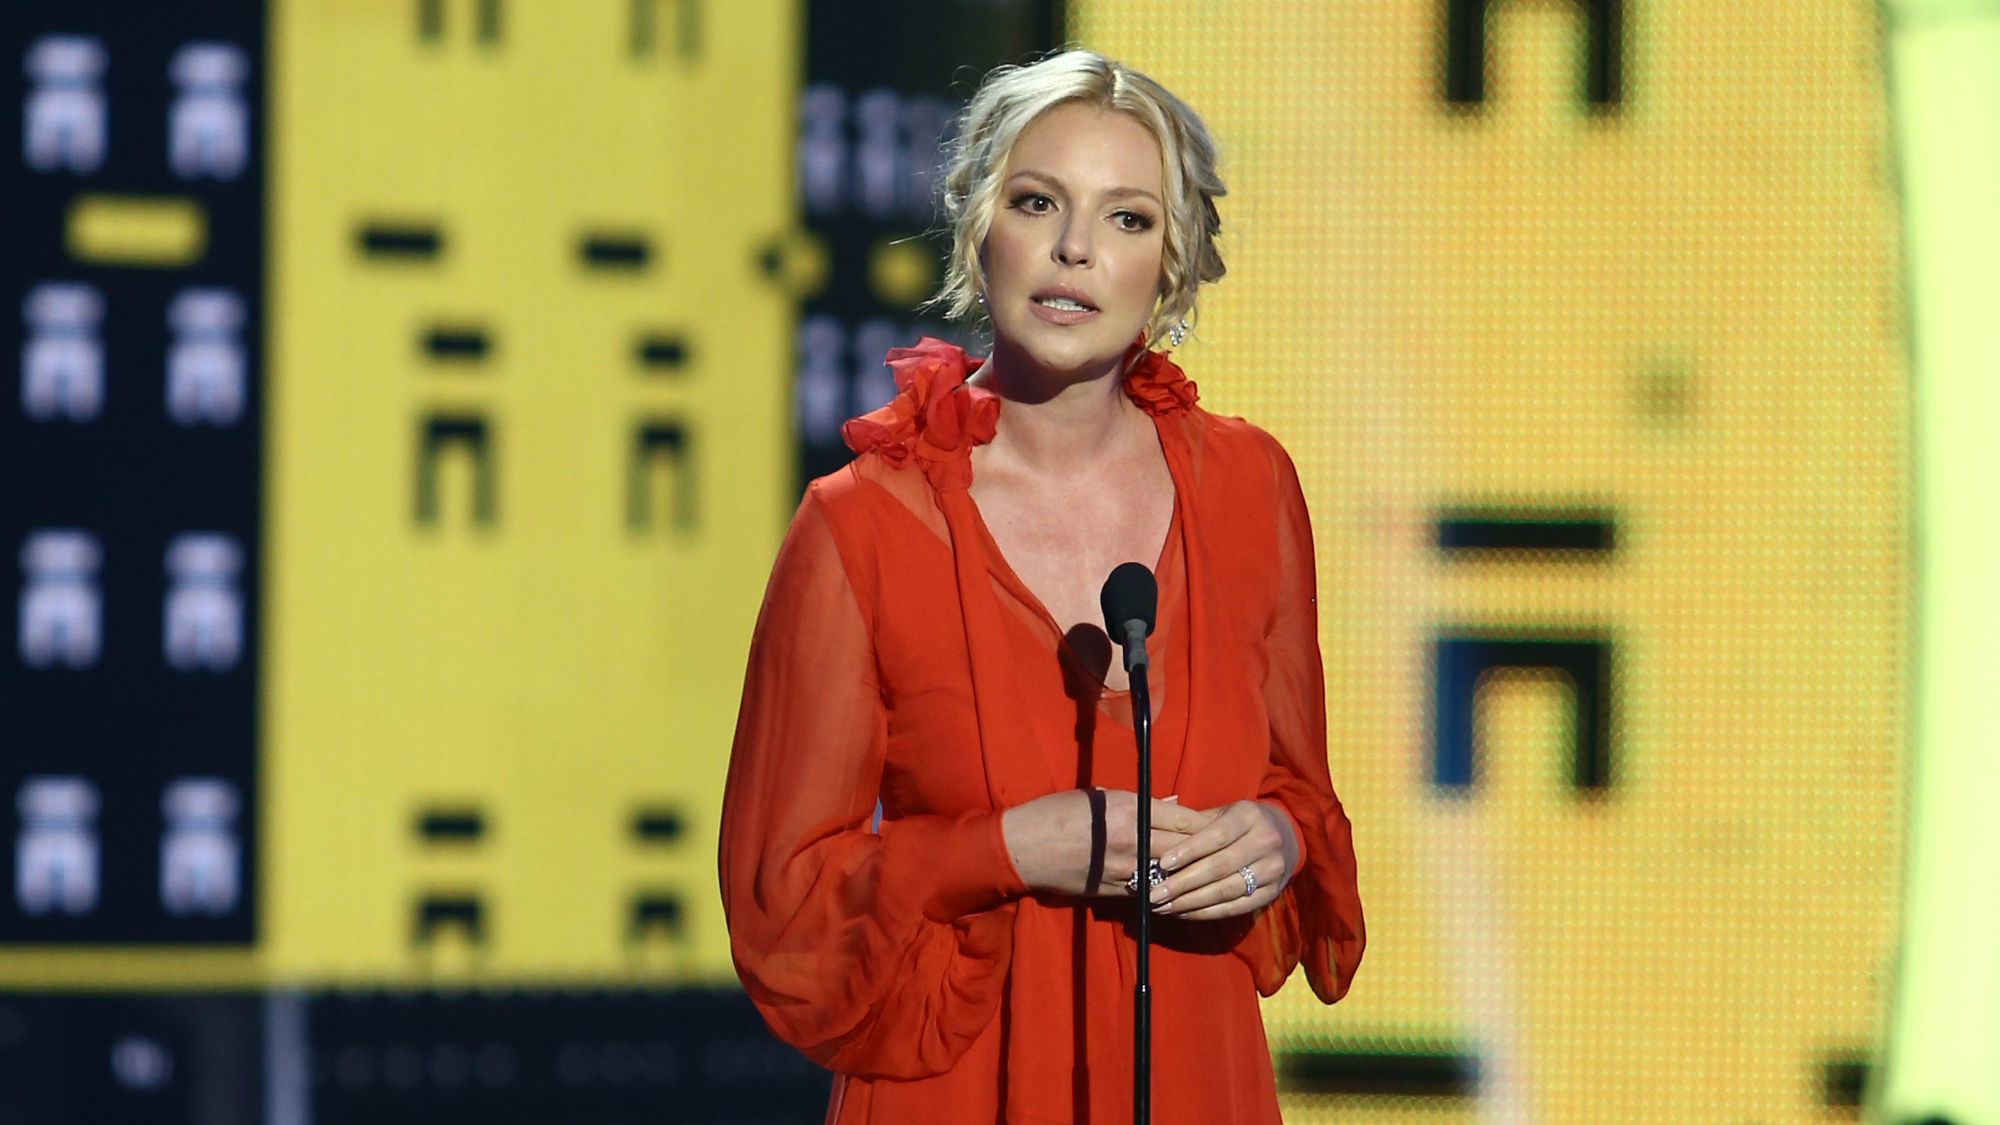 Katherine Heigl just issued a very heartfelt public apology